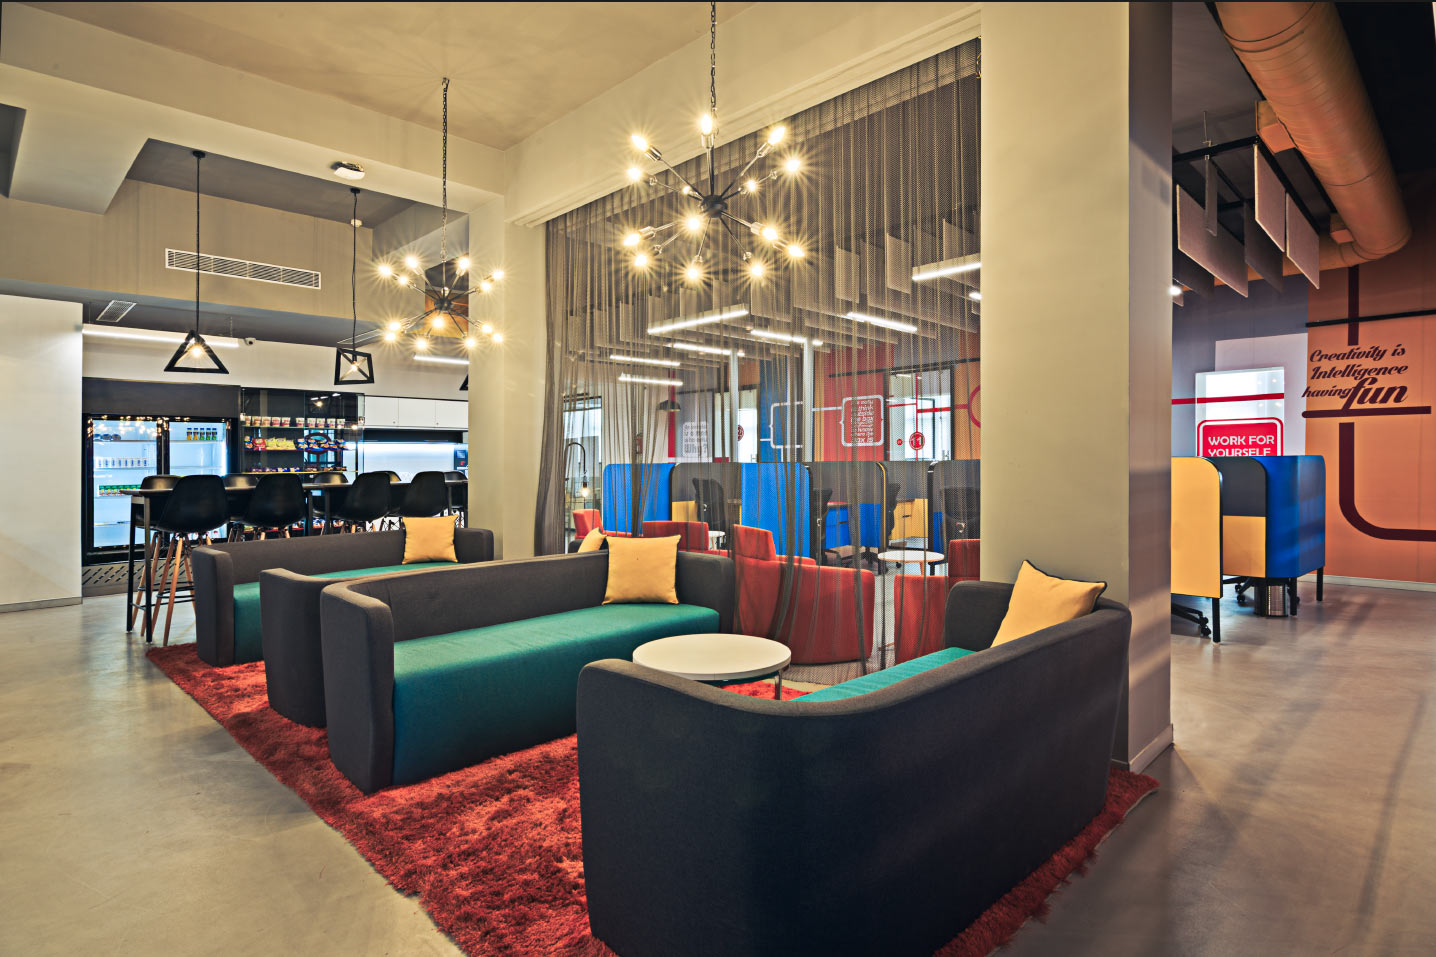 Awfis on-demand: This app lets you book a coworking space in India